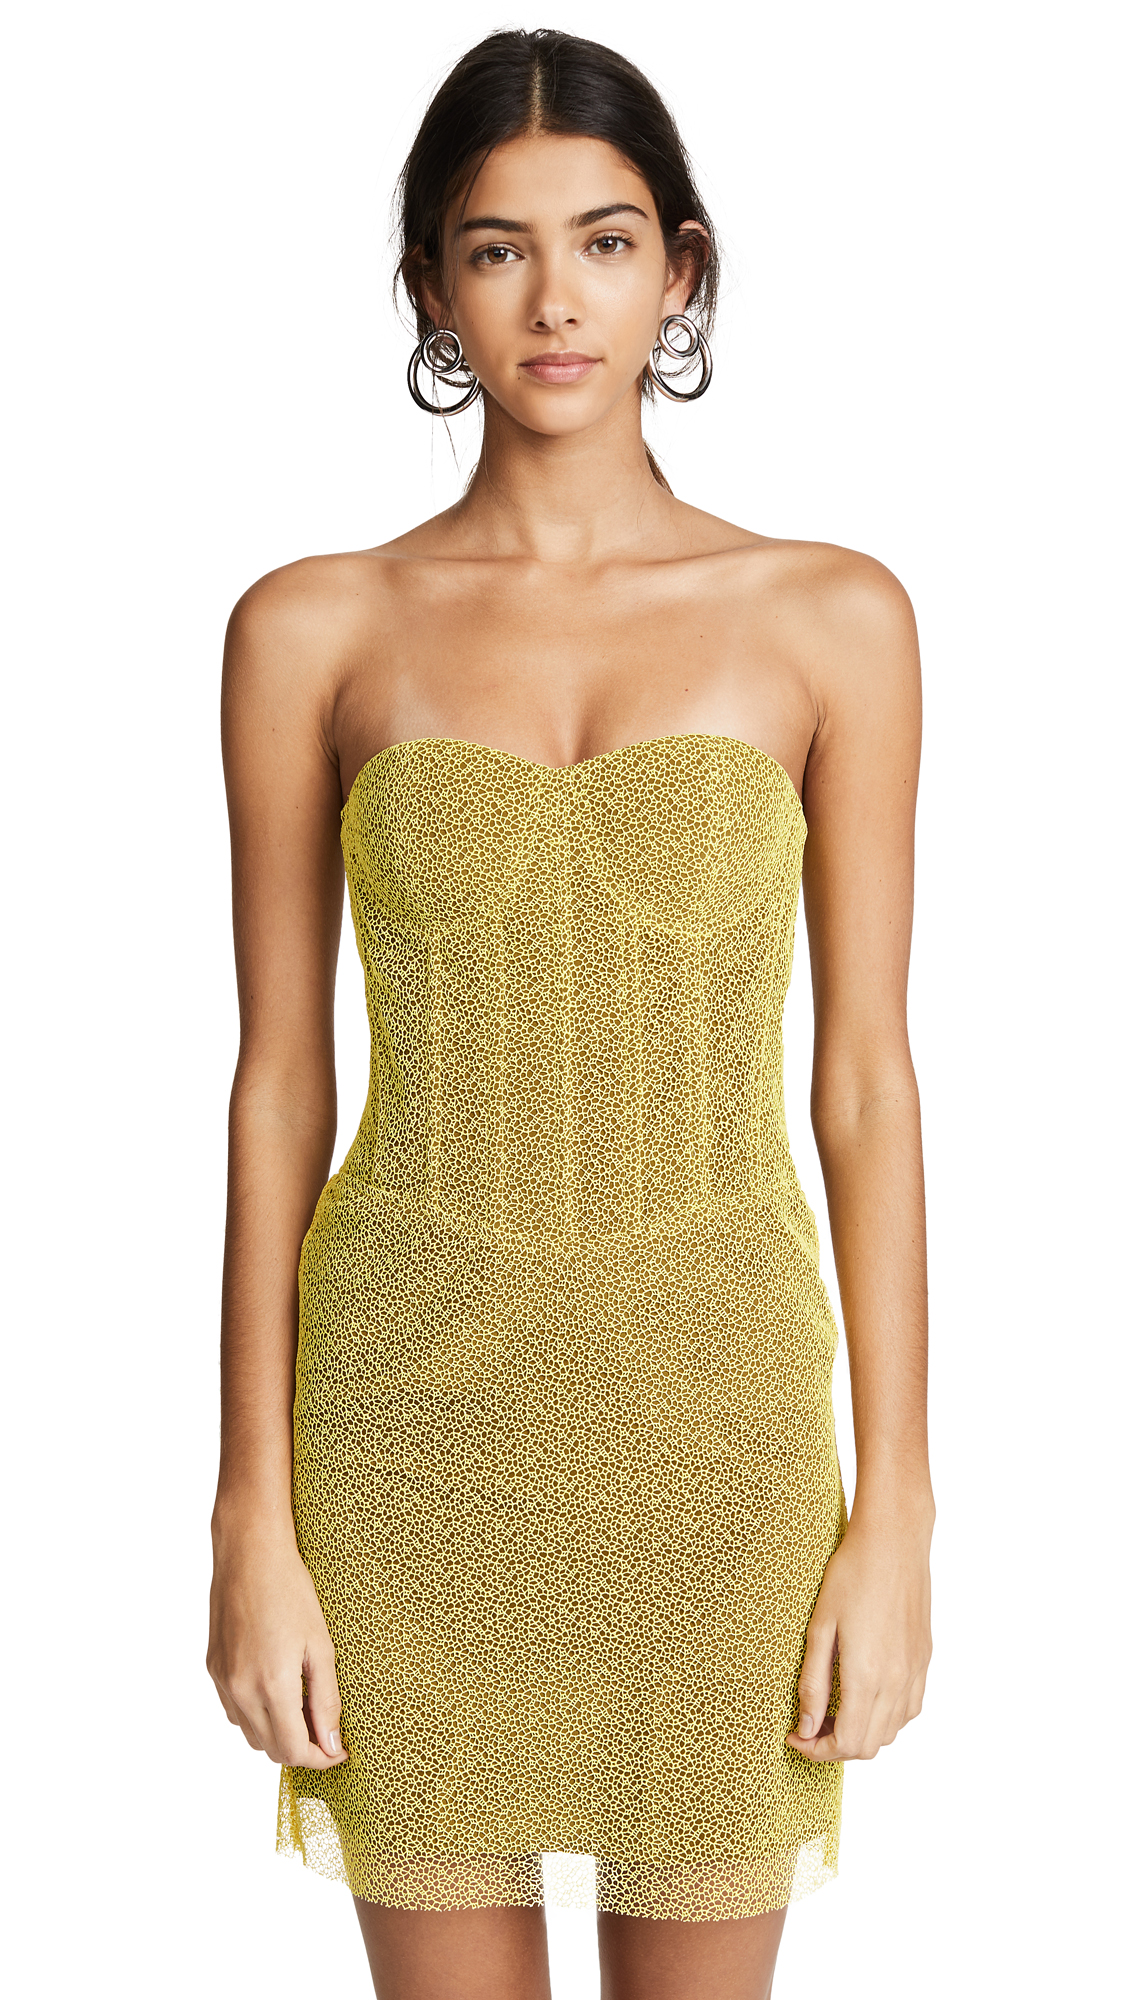 Diane von Furstenberg Corset Dress In Chrome Yellow/Cardamom